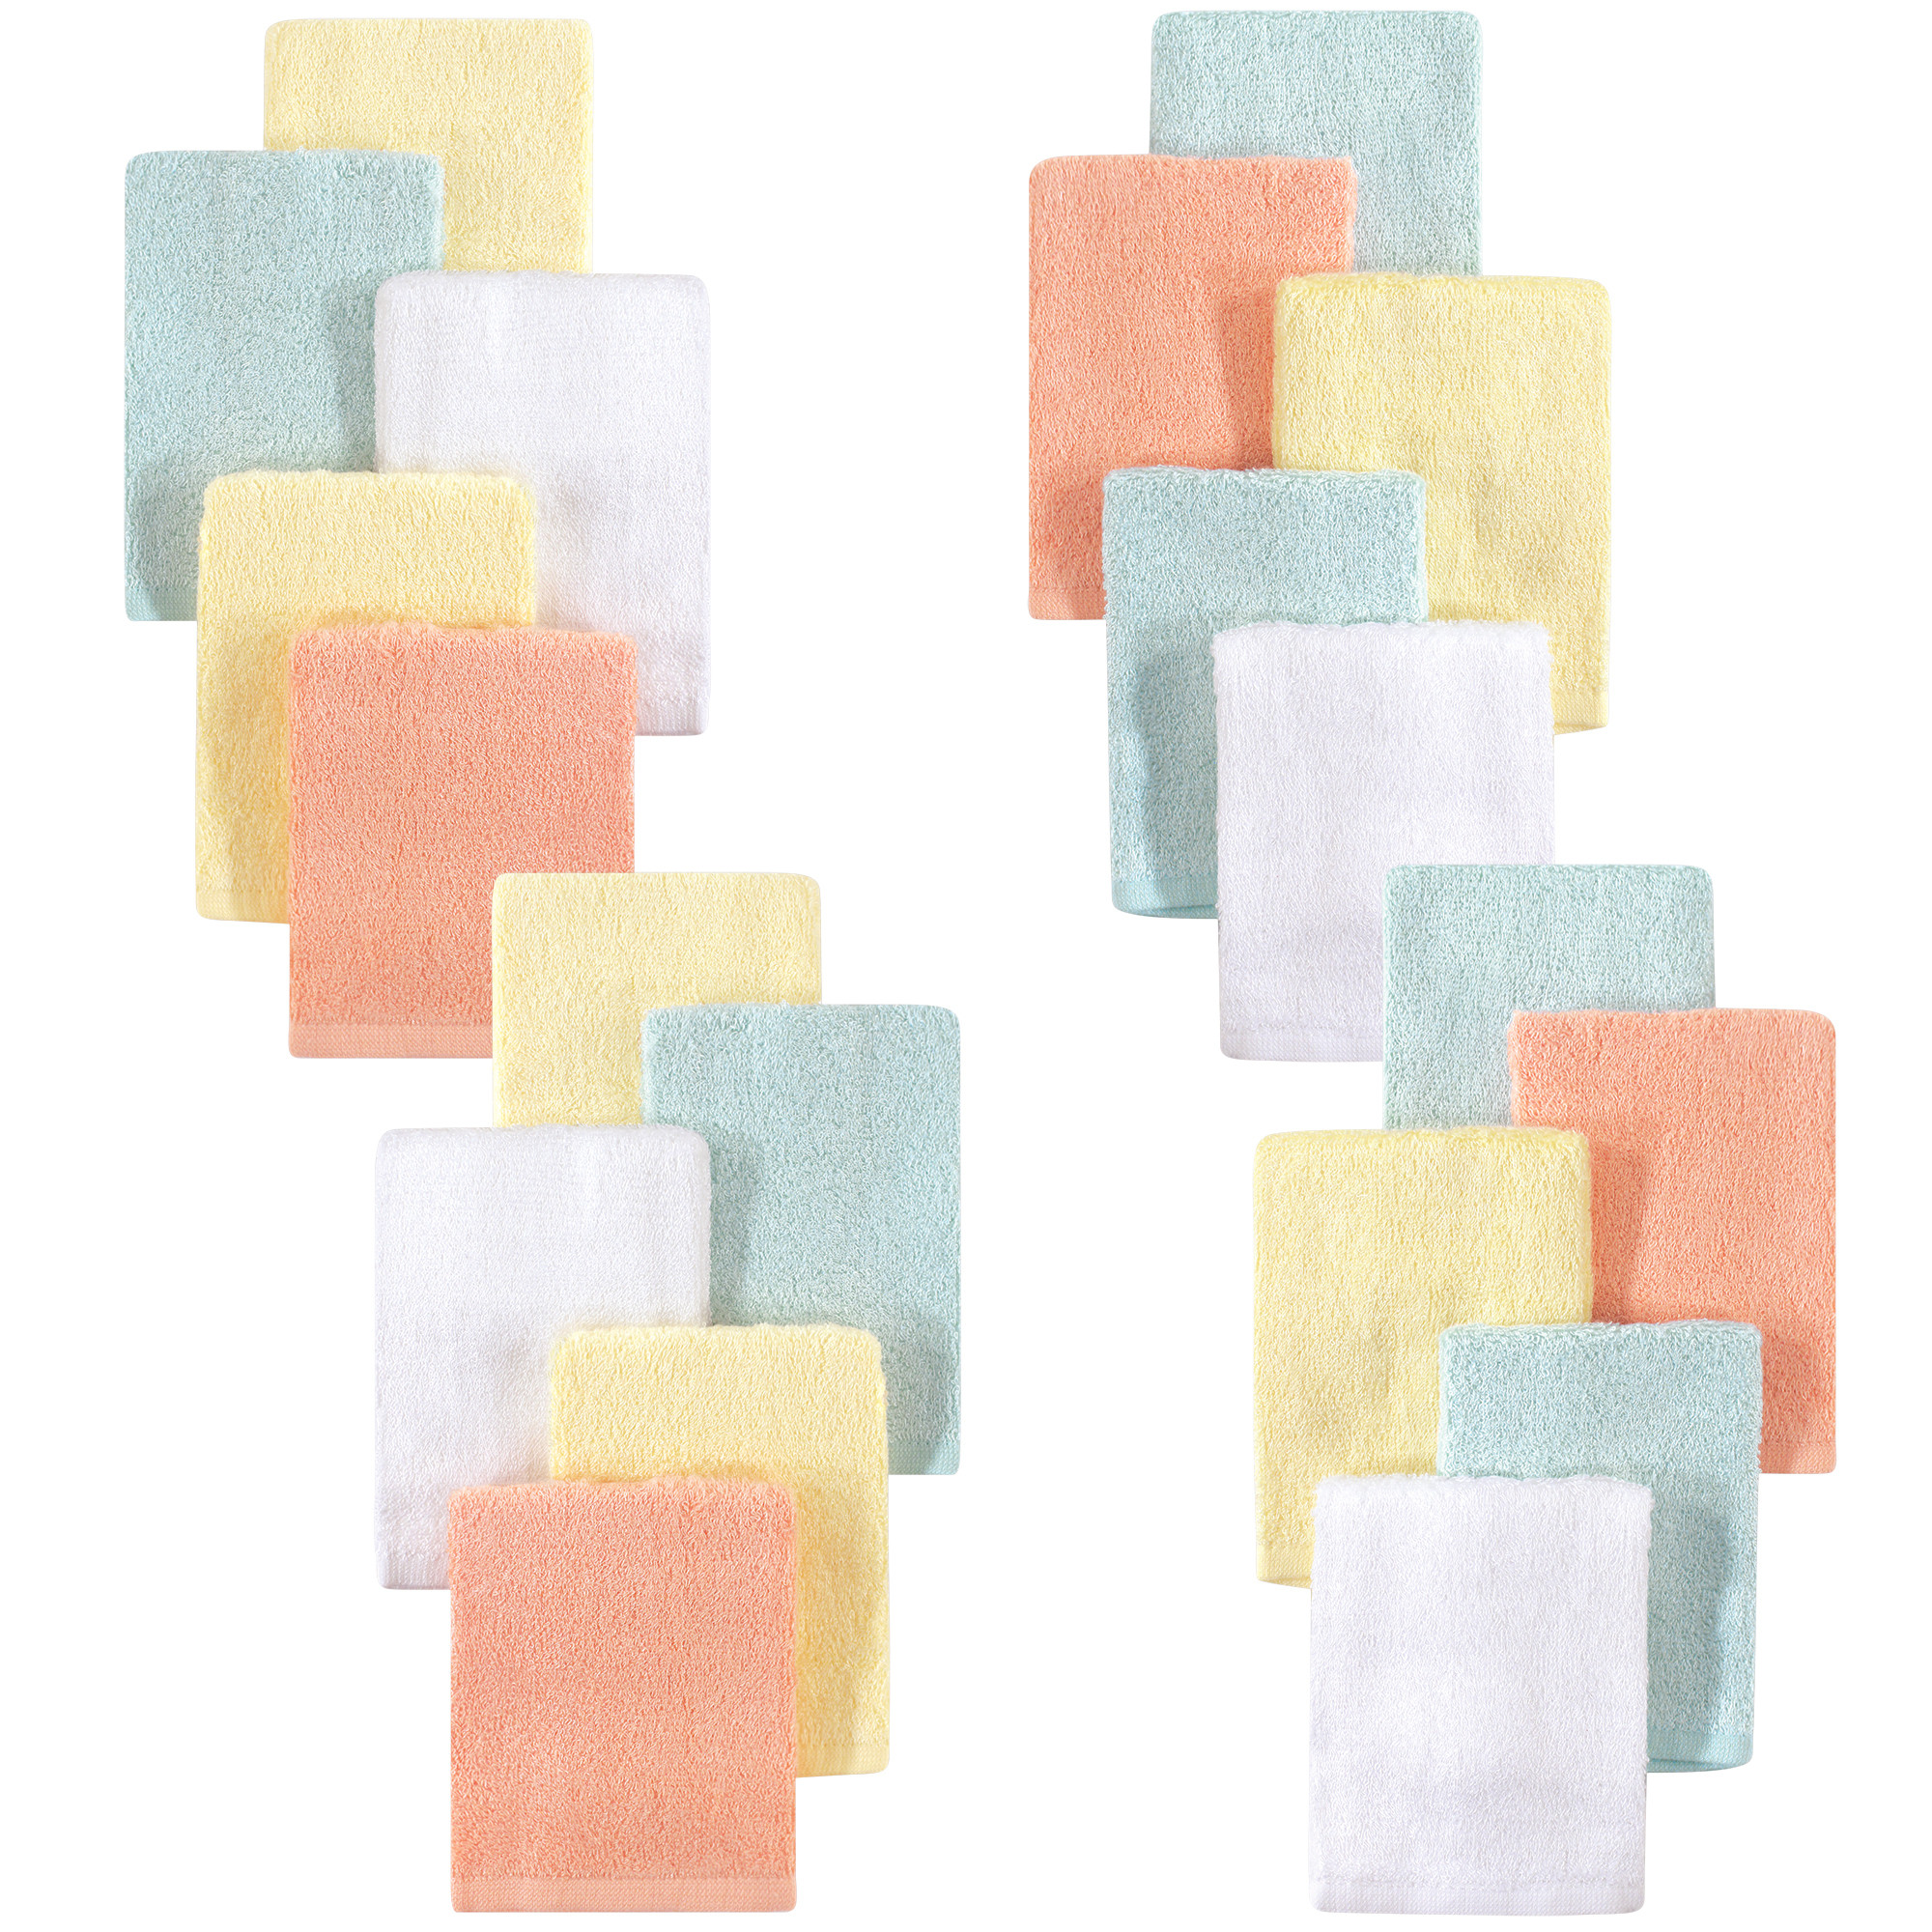 Little Treasure Luxuriously Soft Washcloths, 20 Pack, Yellow Peach by Little Treasure